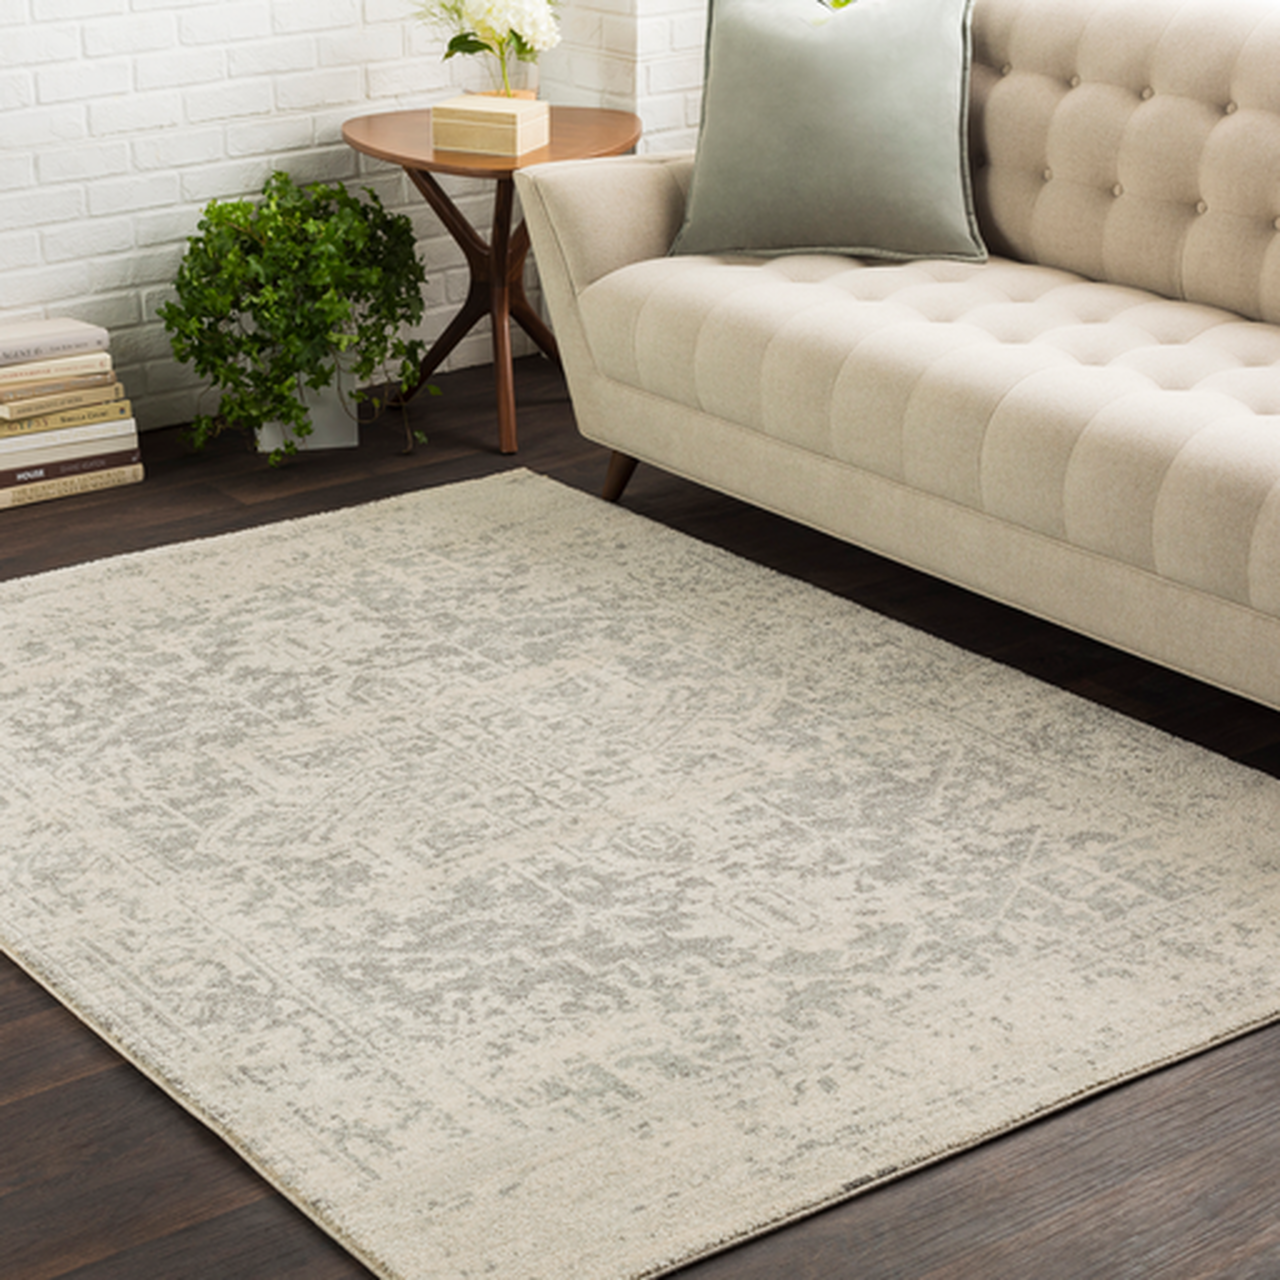 A neutral-color rug on a hardwood floor in front of a matching couch